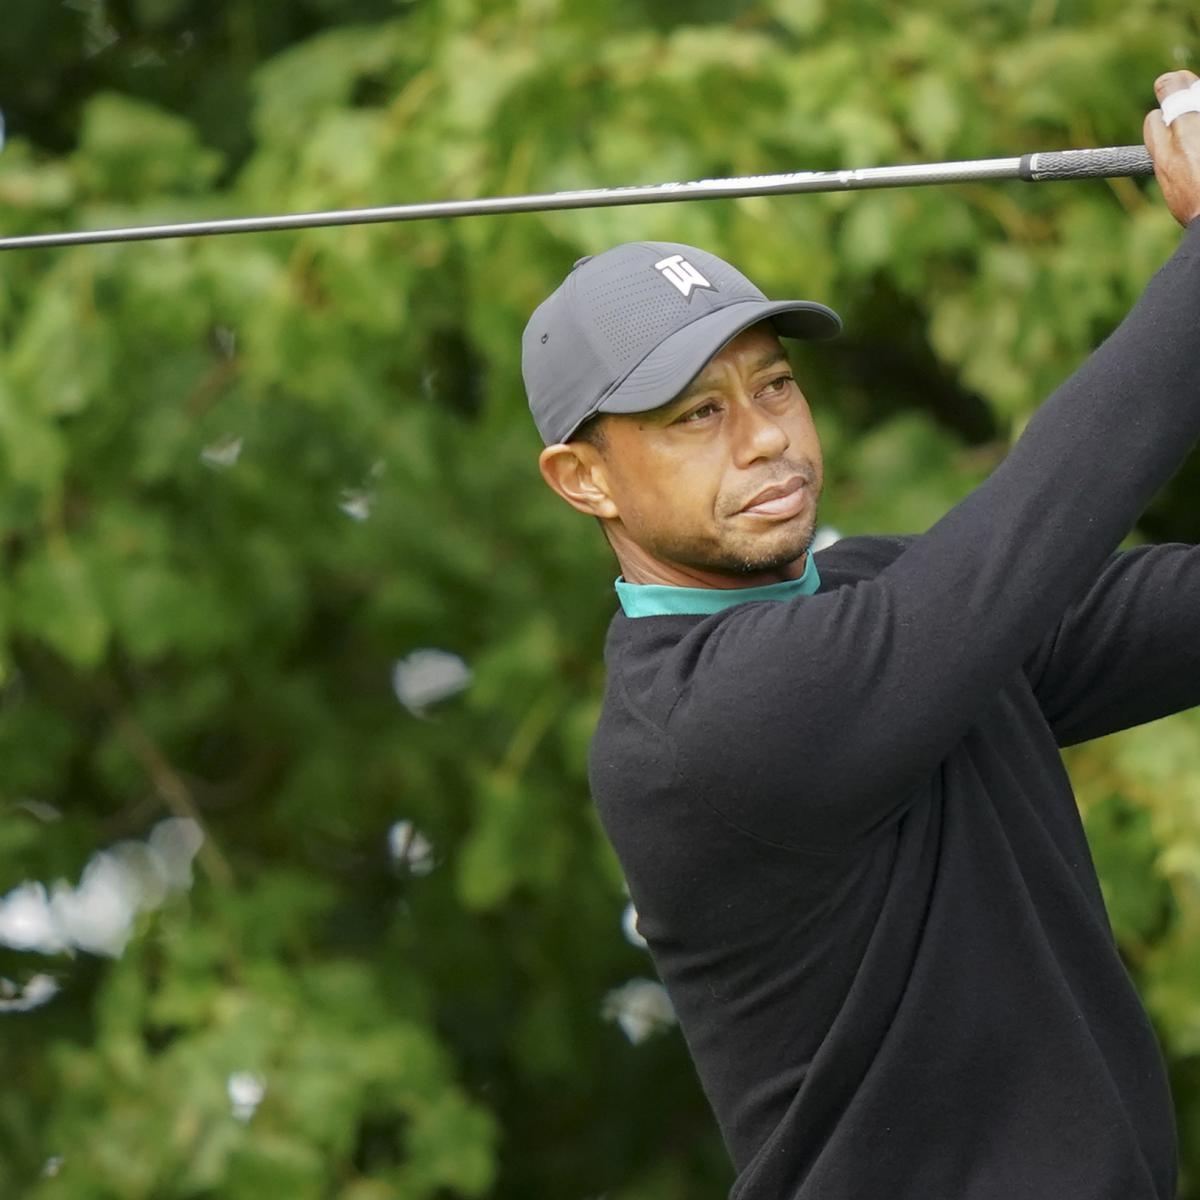 Tiger Woods Says Winged Foot Among Most Indispensable Golf Programs Ahead of US Inaugurate thumbnail